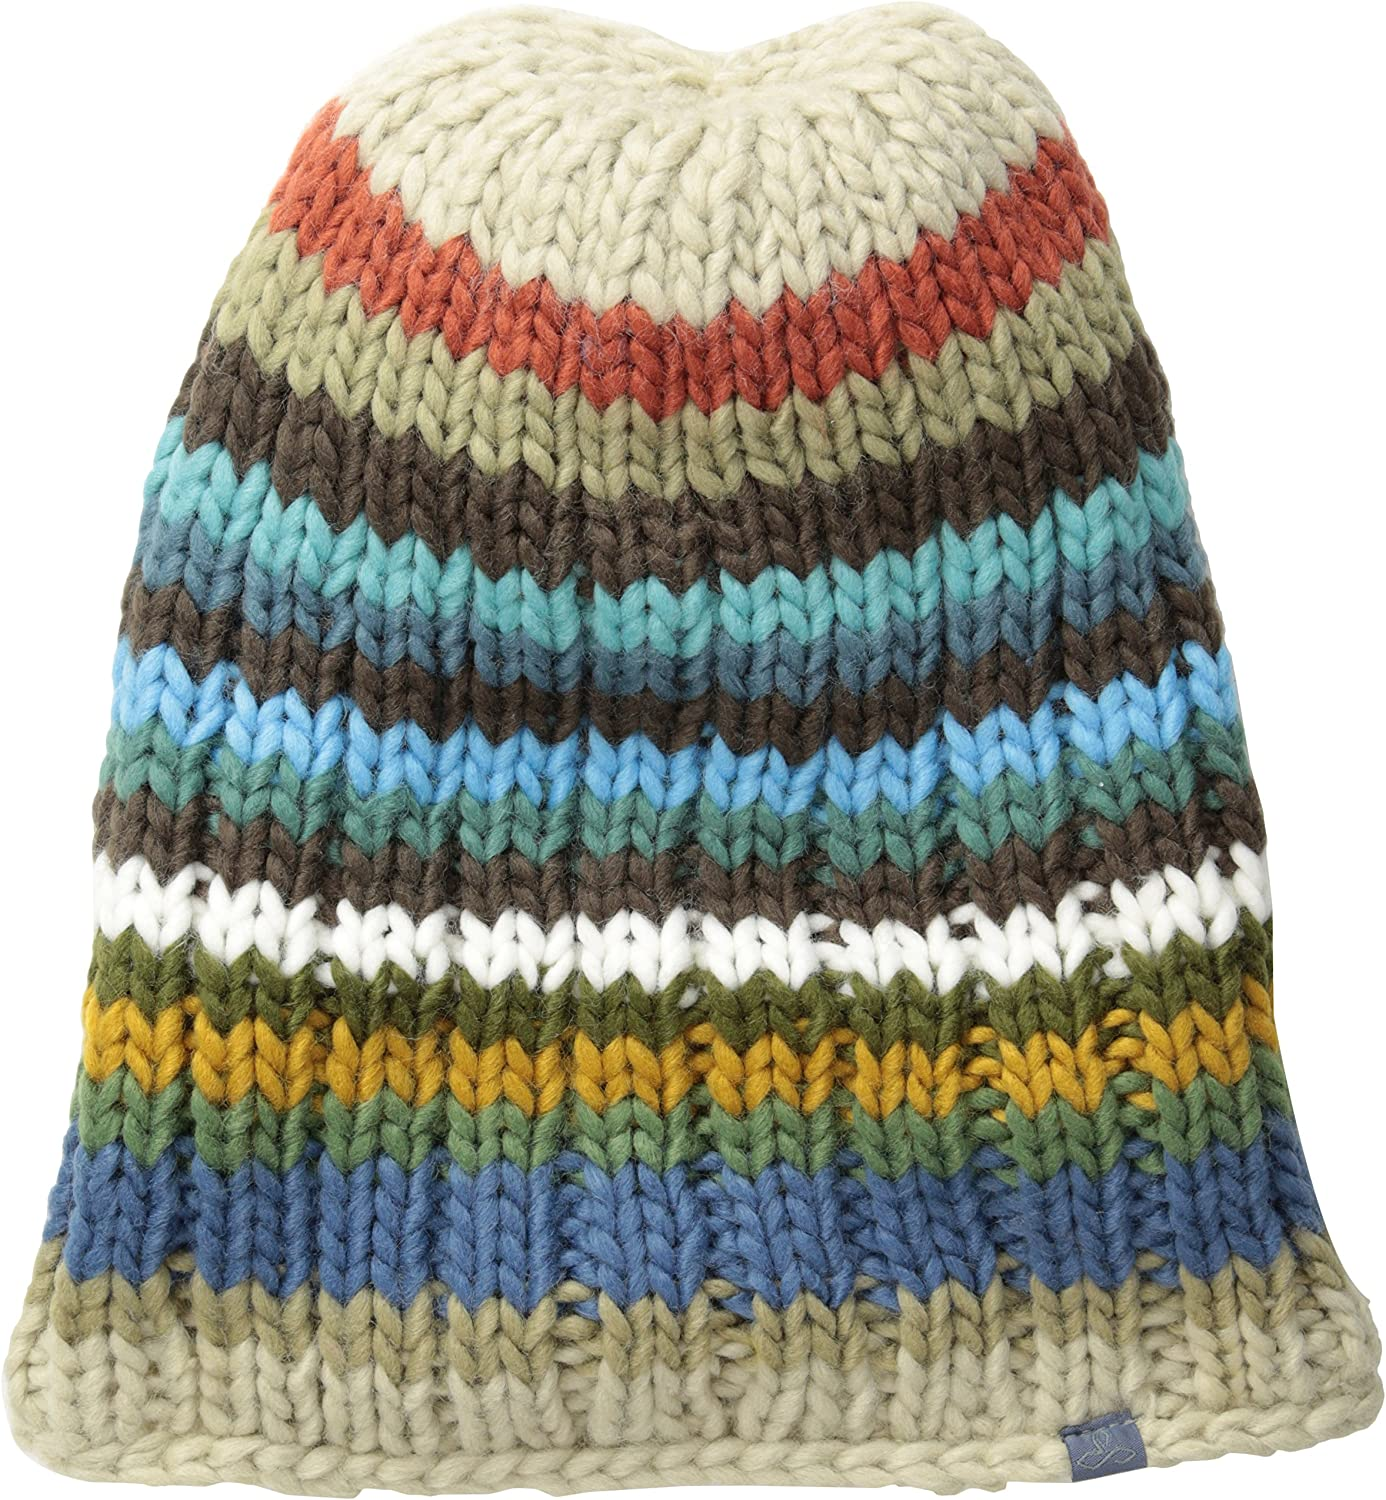 New Industry No. 1 products world's highest quality popular prAna Men's Beanie Cooper